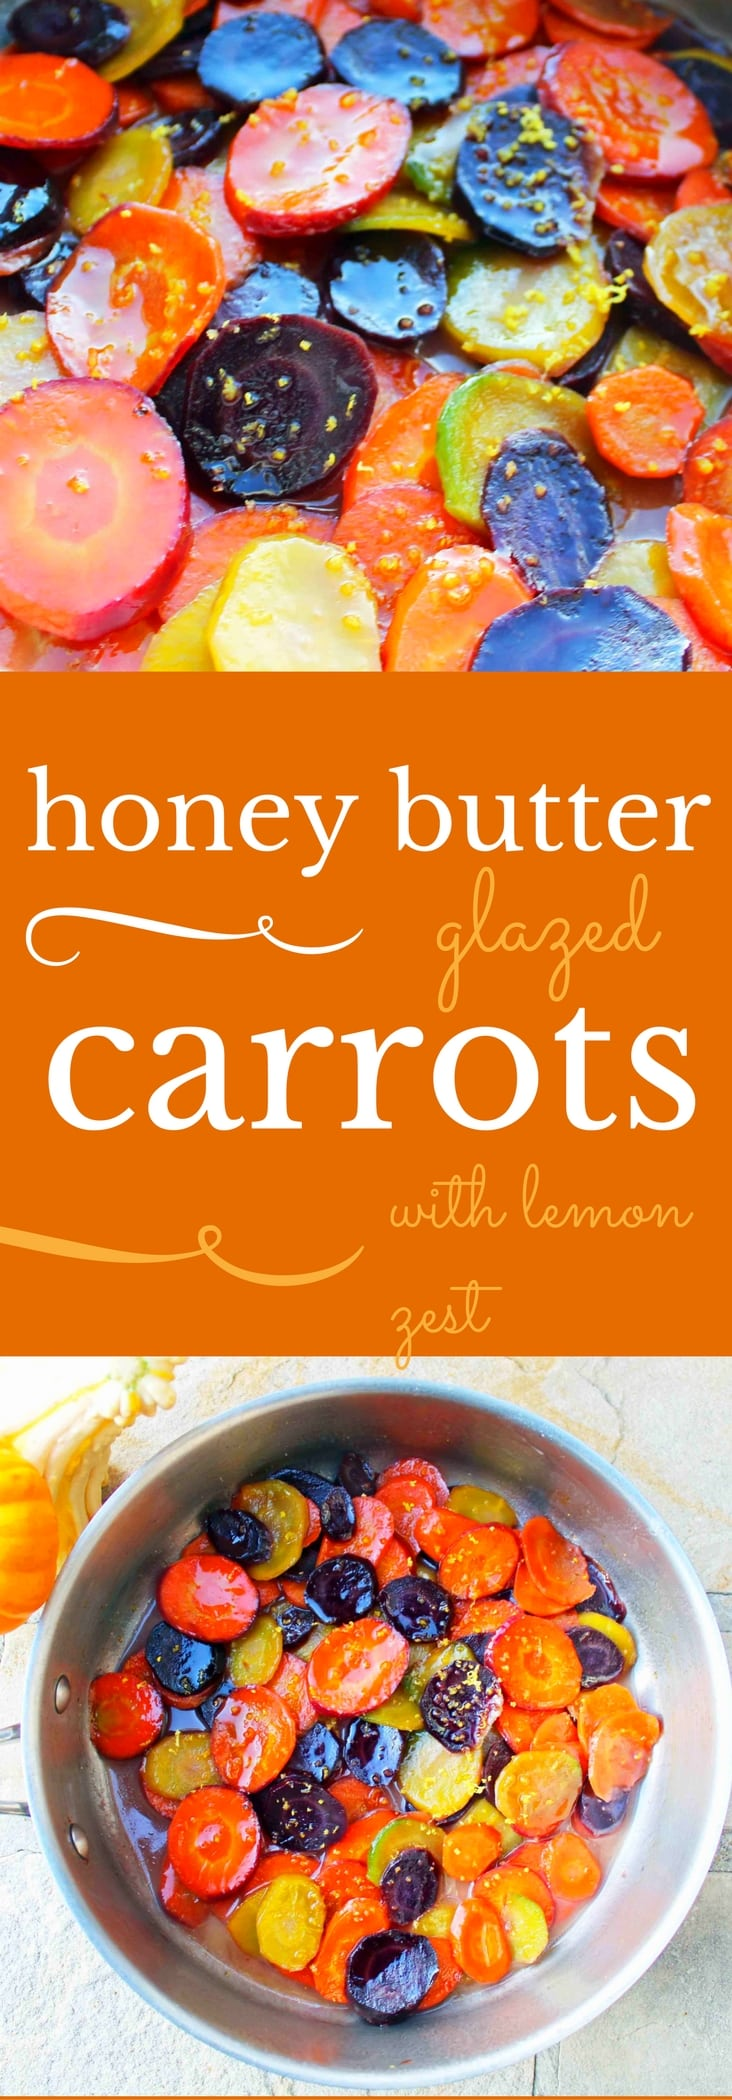 Honey Butter Glazed Carrots by Modern Honey. Heirloom Carrots, Sweet Cream Butter, Creamy Honey, and Lemon Zest make these carrots a real crowd pleaser. A simple but flavorful side dish.